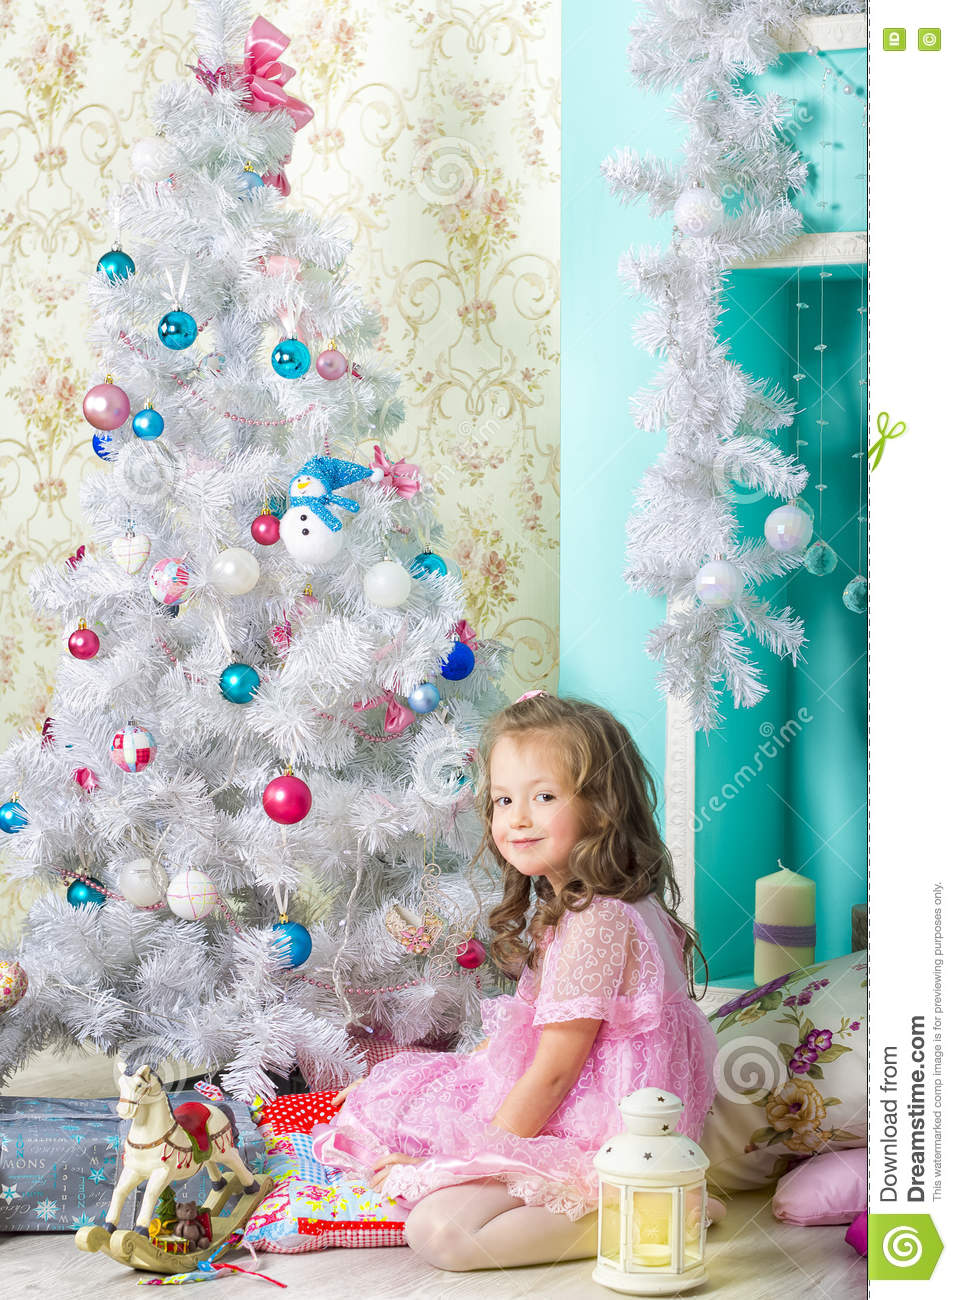 Christmas tree dress up images - Waiting For Christmas Little Girl Dresses Up Christmas Tree